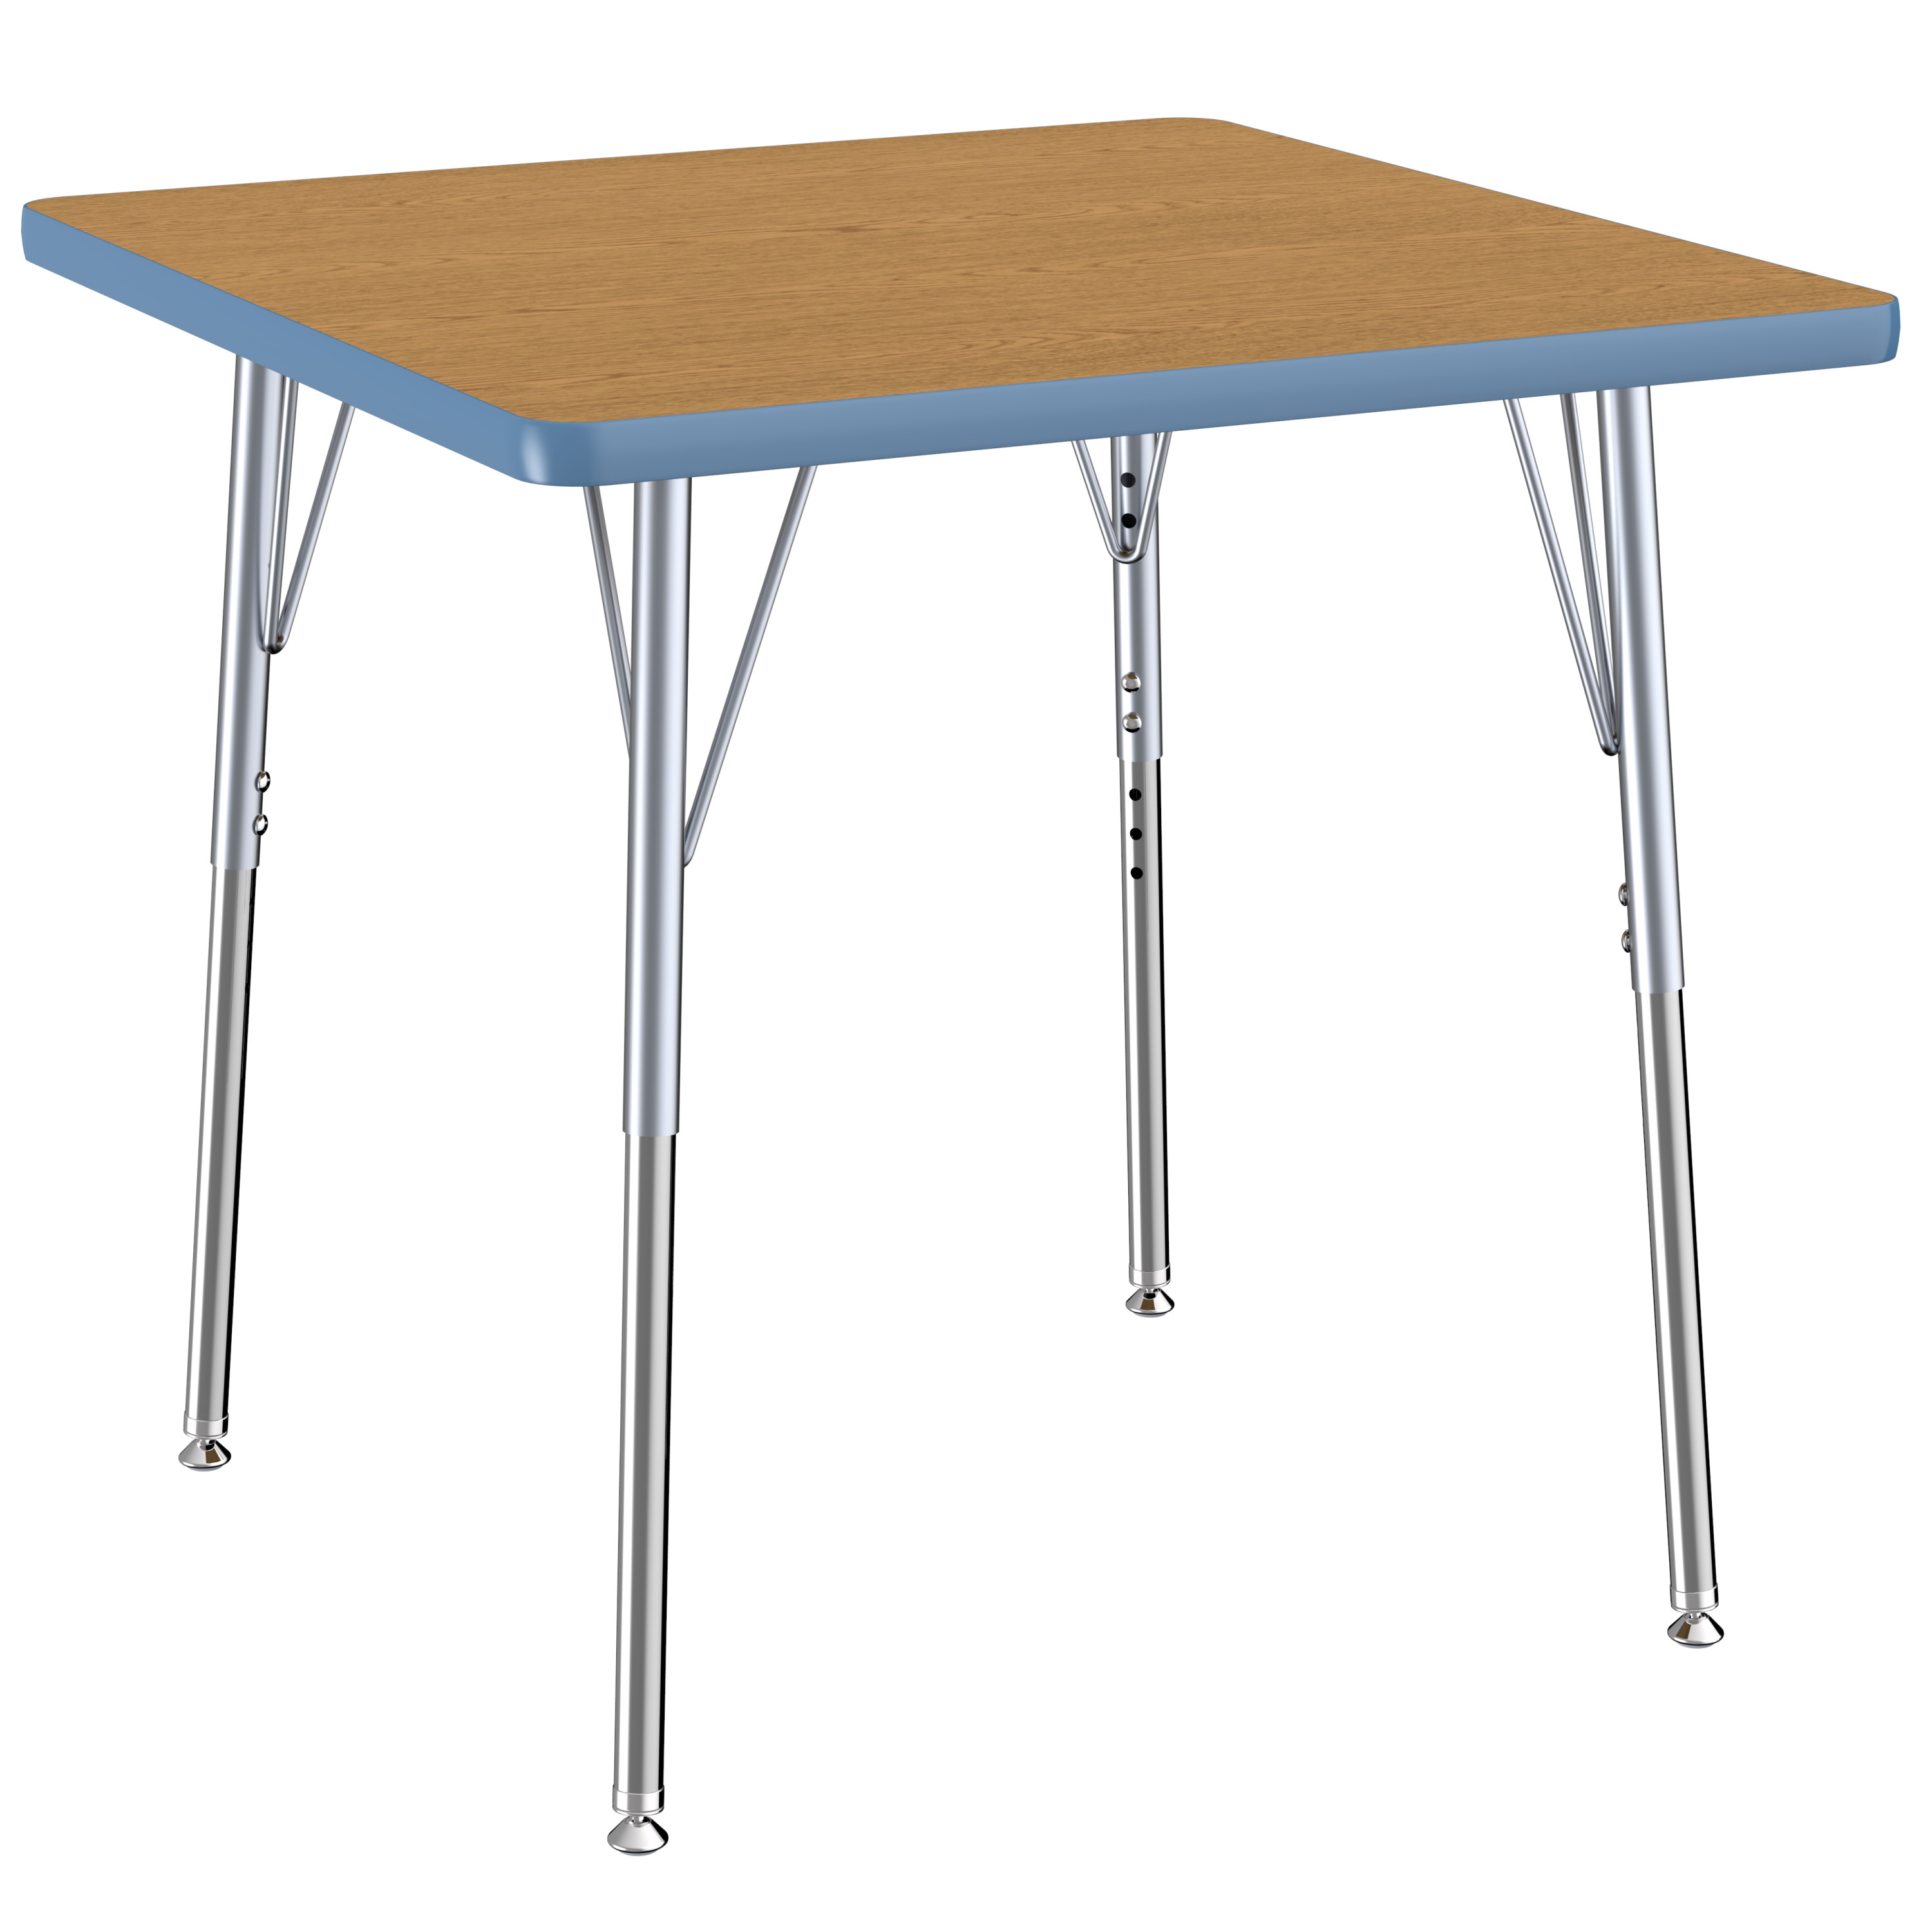 ECR4Kids 30in x 30in Square Contour Thermo-Fused Adjustable Activity Table Oak/Powder Blue/Silver - Standard Swivel